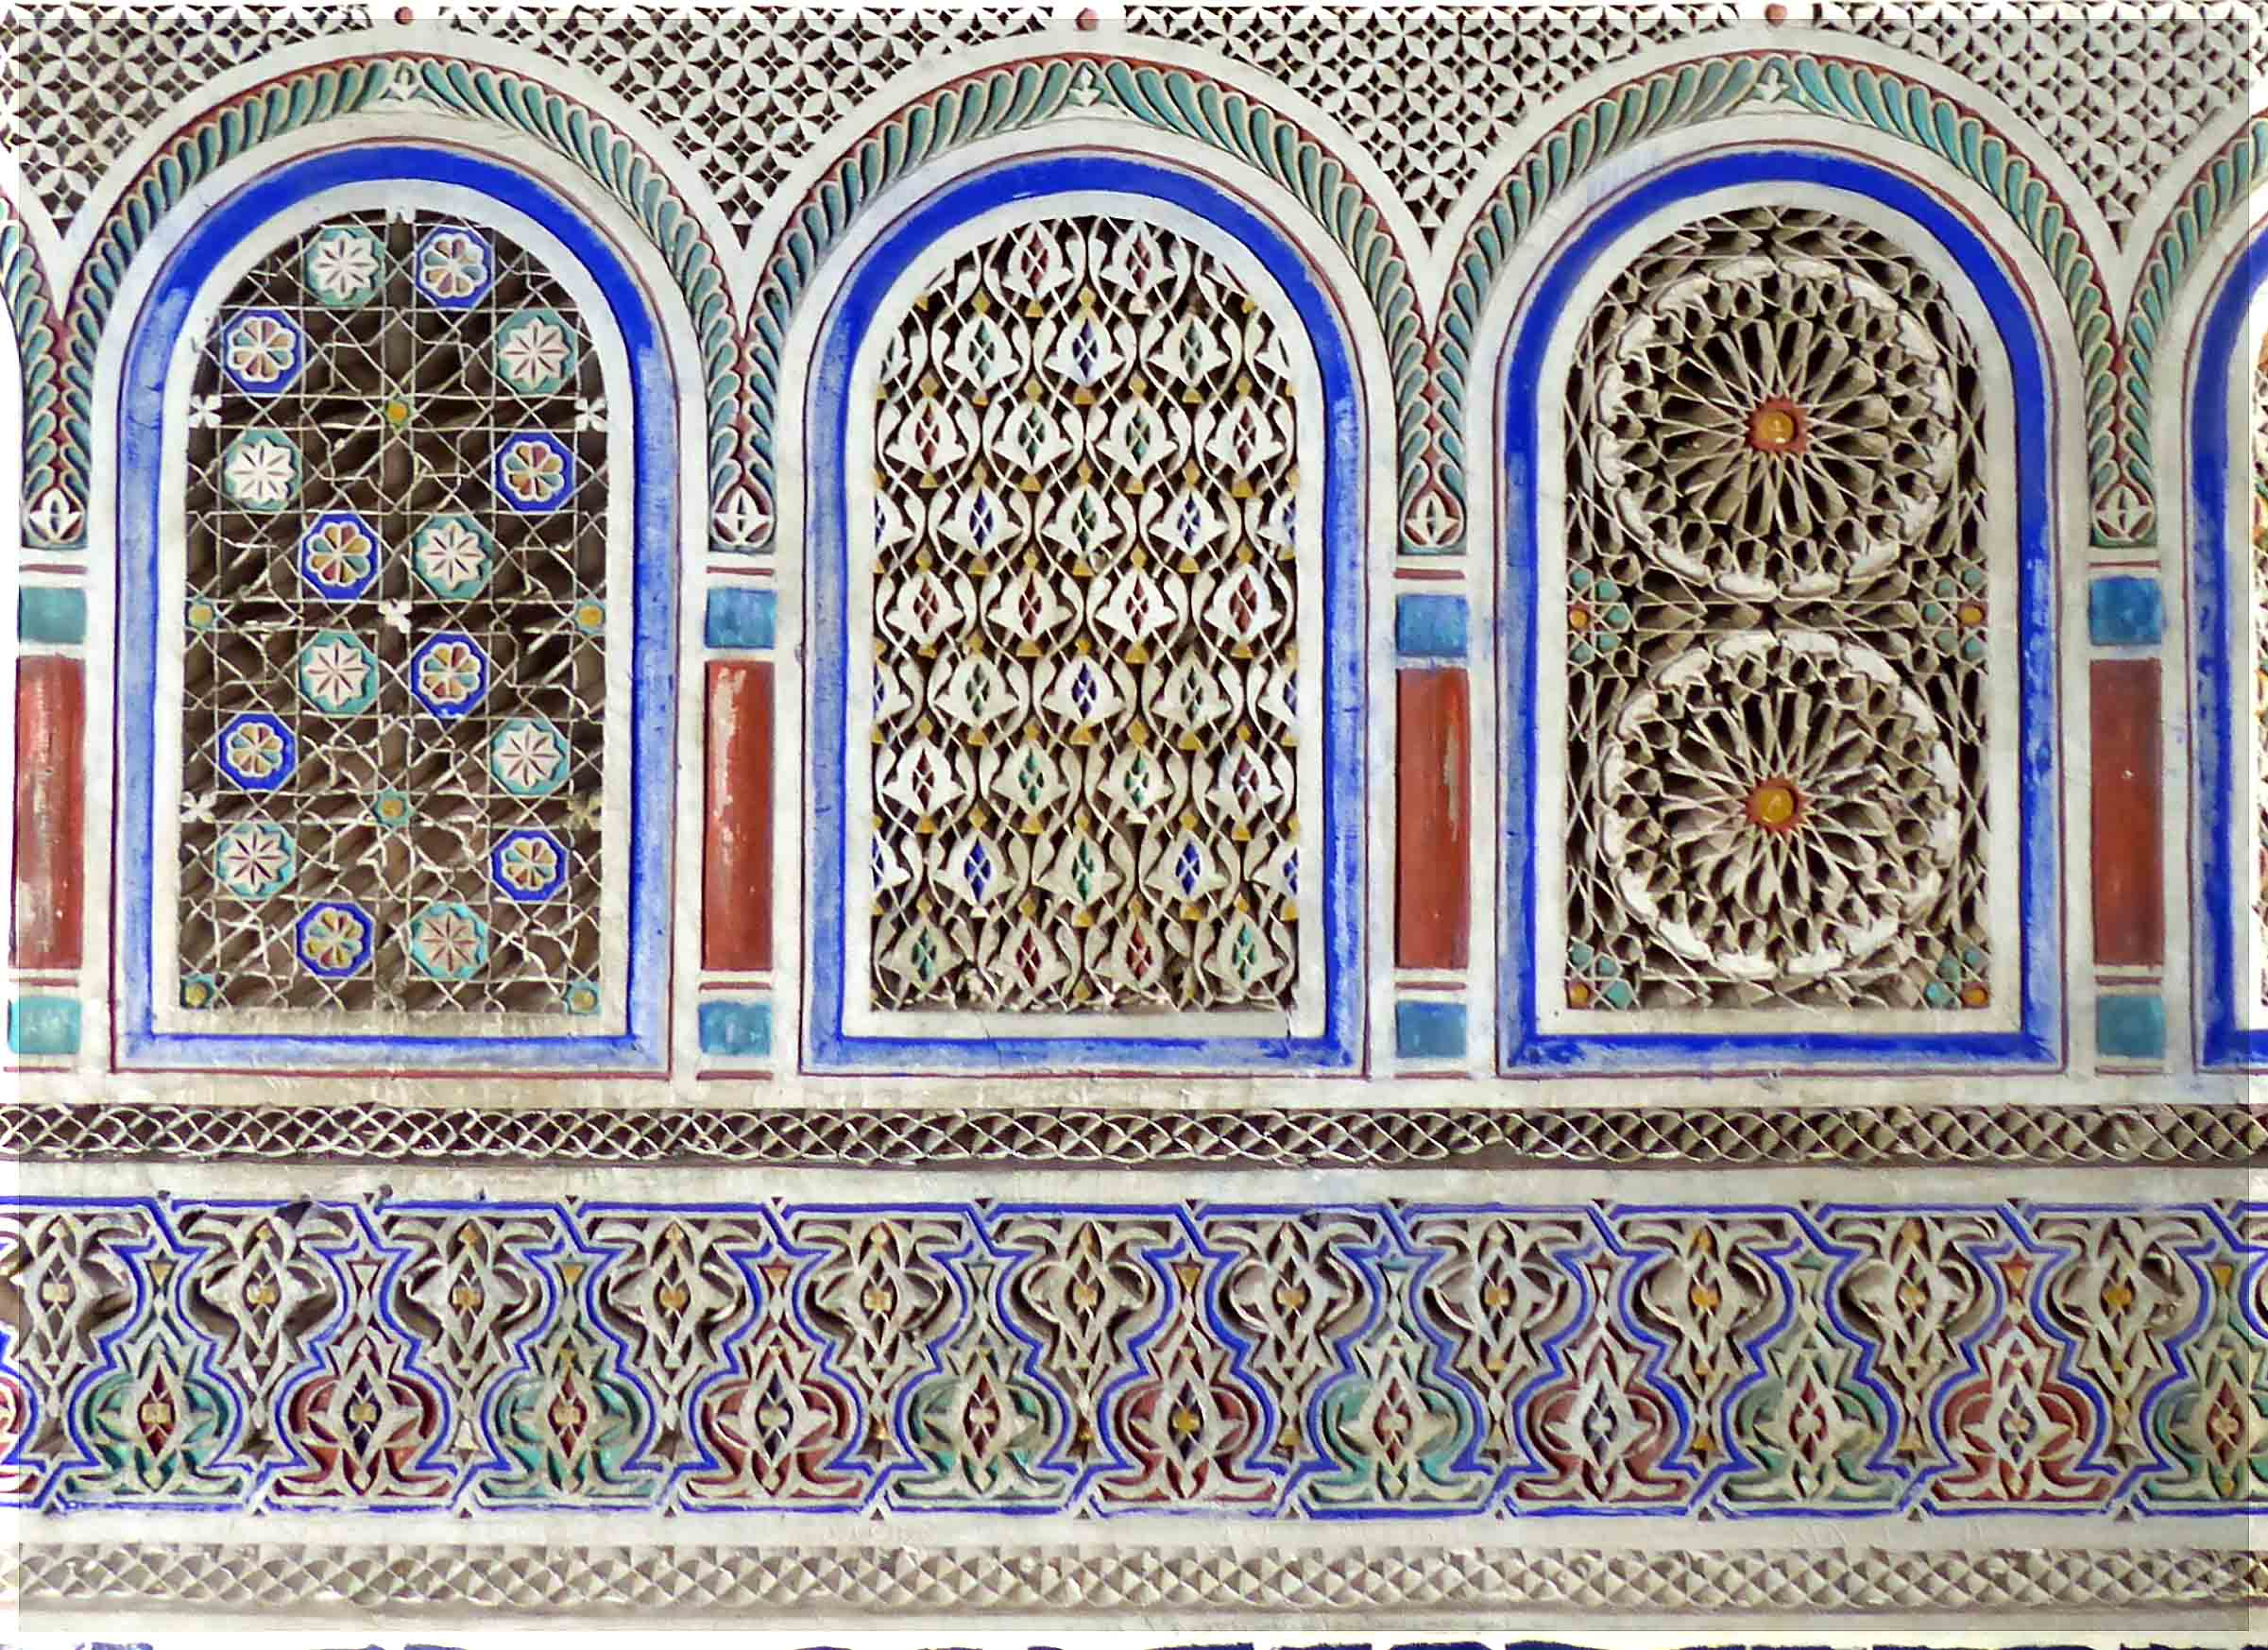 Decorative tiles in blue, green and white with arched openings